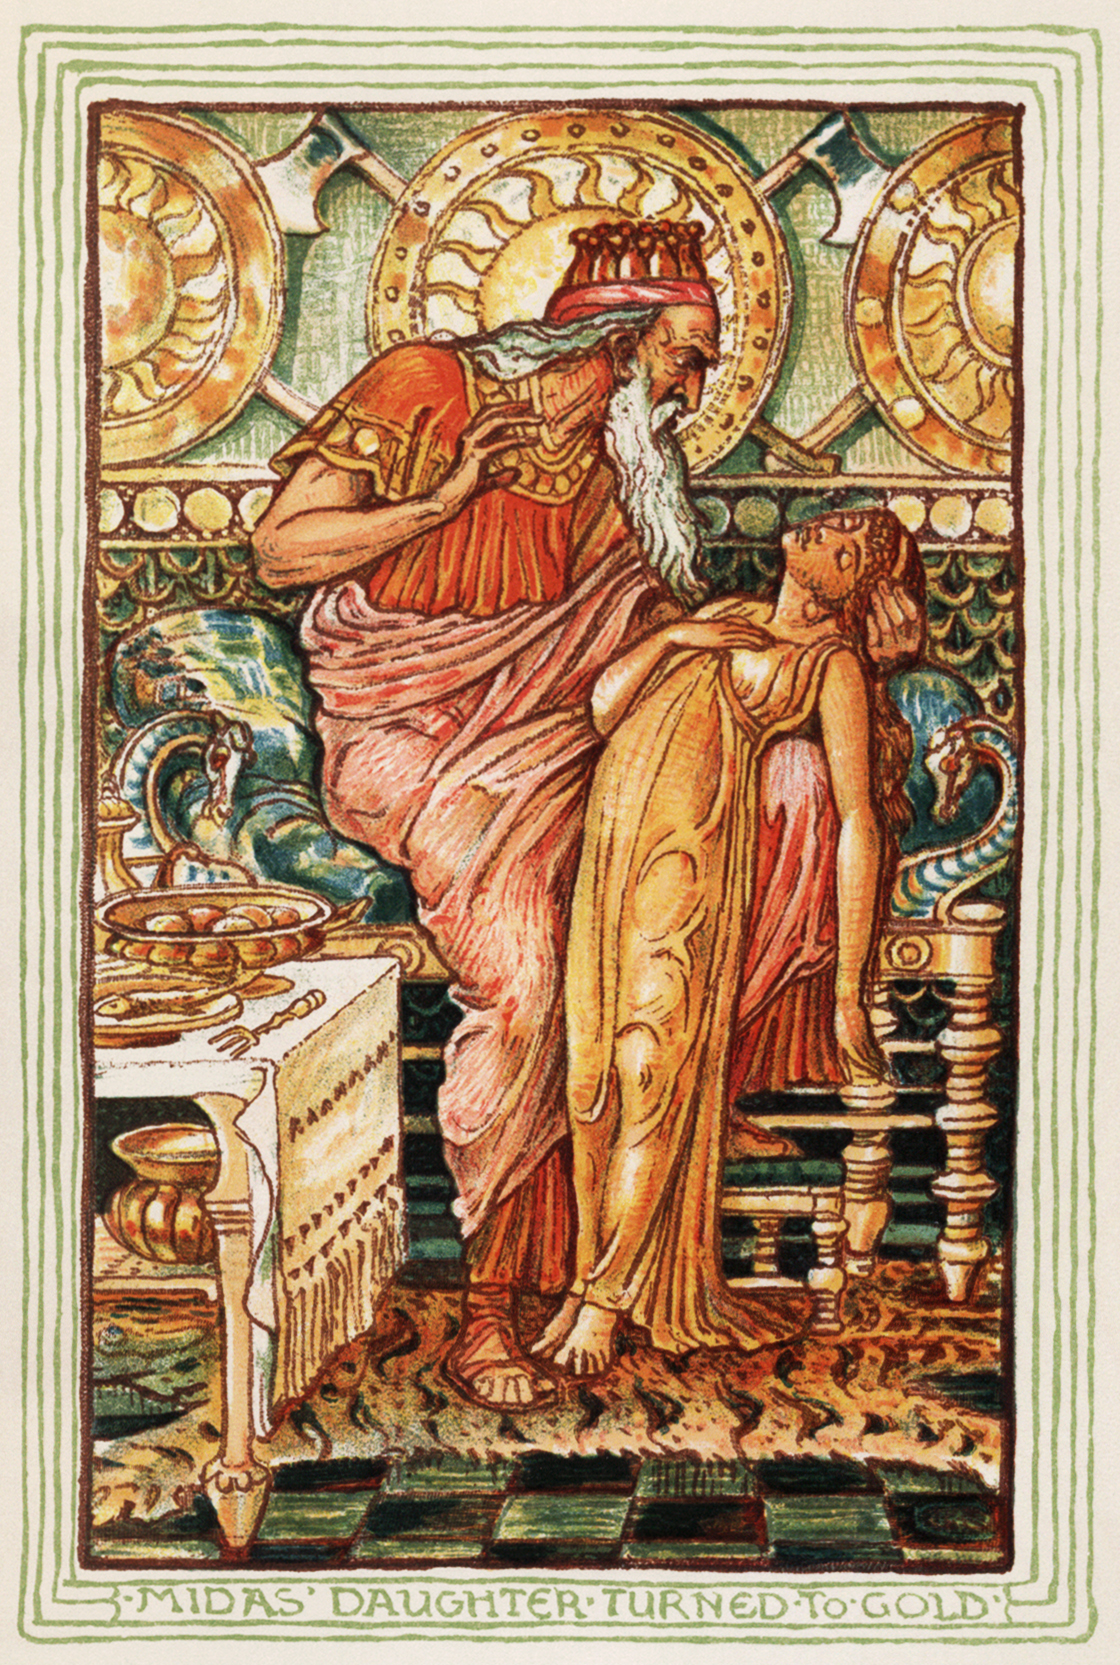 greek mythology in popular culture the midas myth from nathaniel hawthorne s a wonder book for girls and boys illustration by walter crane published 1893